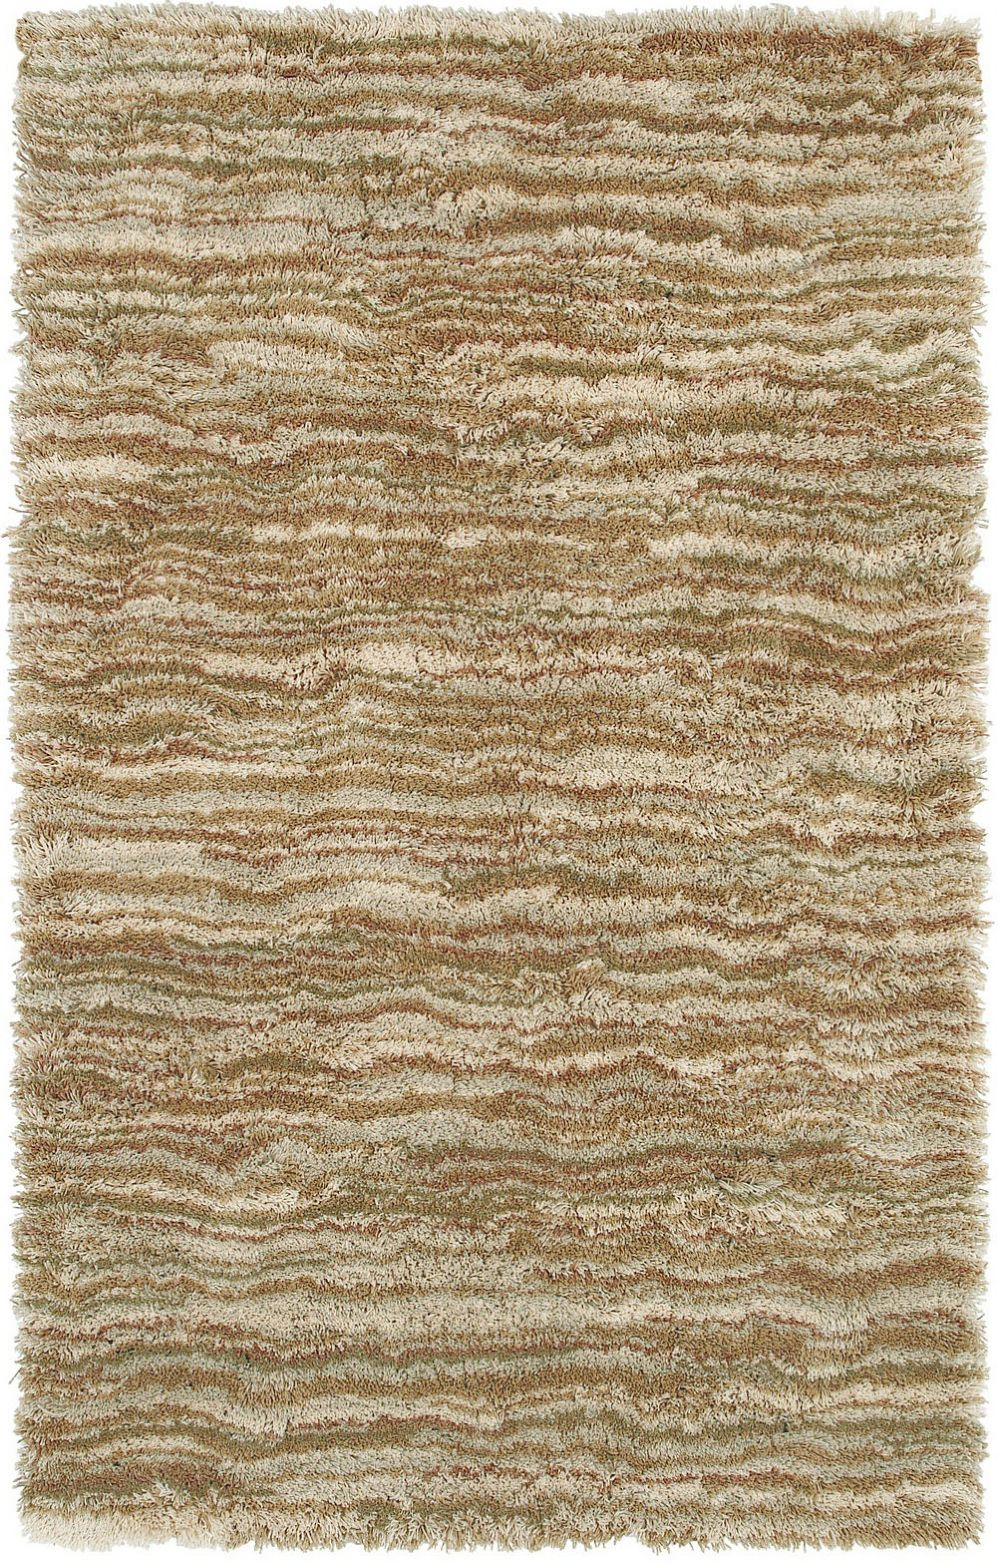 shaw structure transitional area rug collection